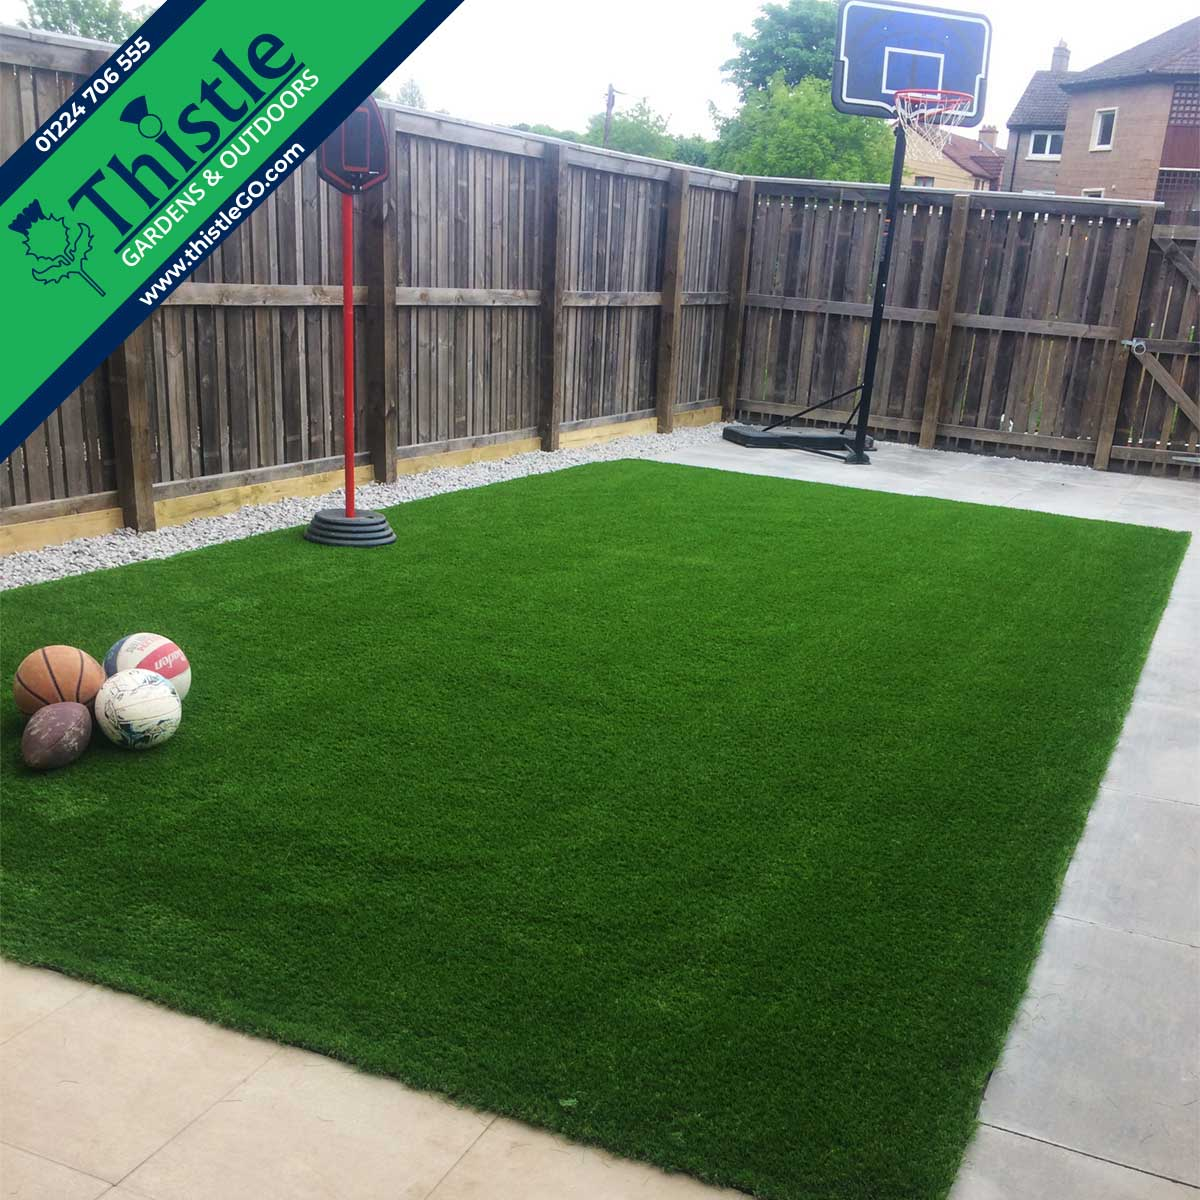 Thistle Artificial Grass Aberdeen, Aberdeenshire & North East Scotland: Children's Play Areas